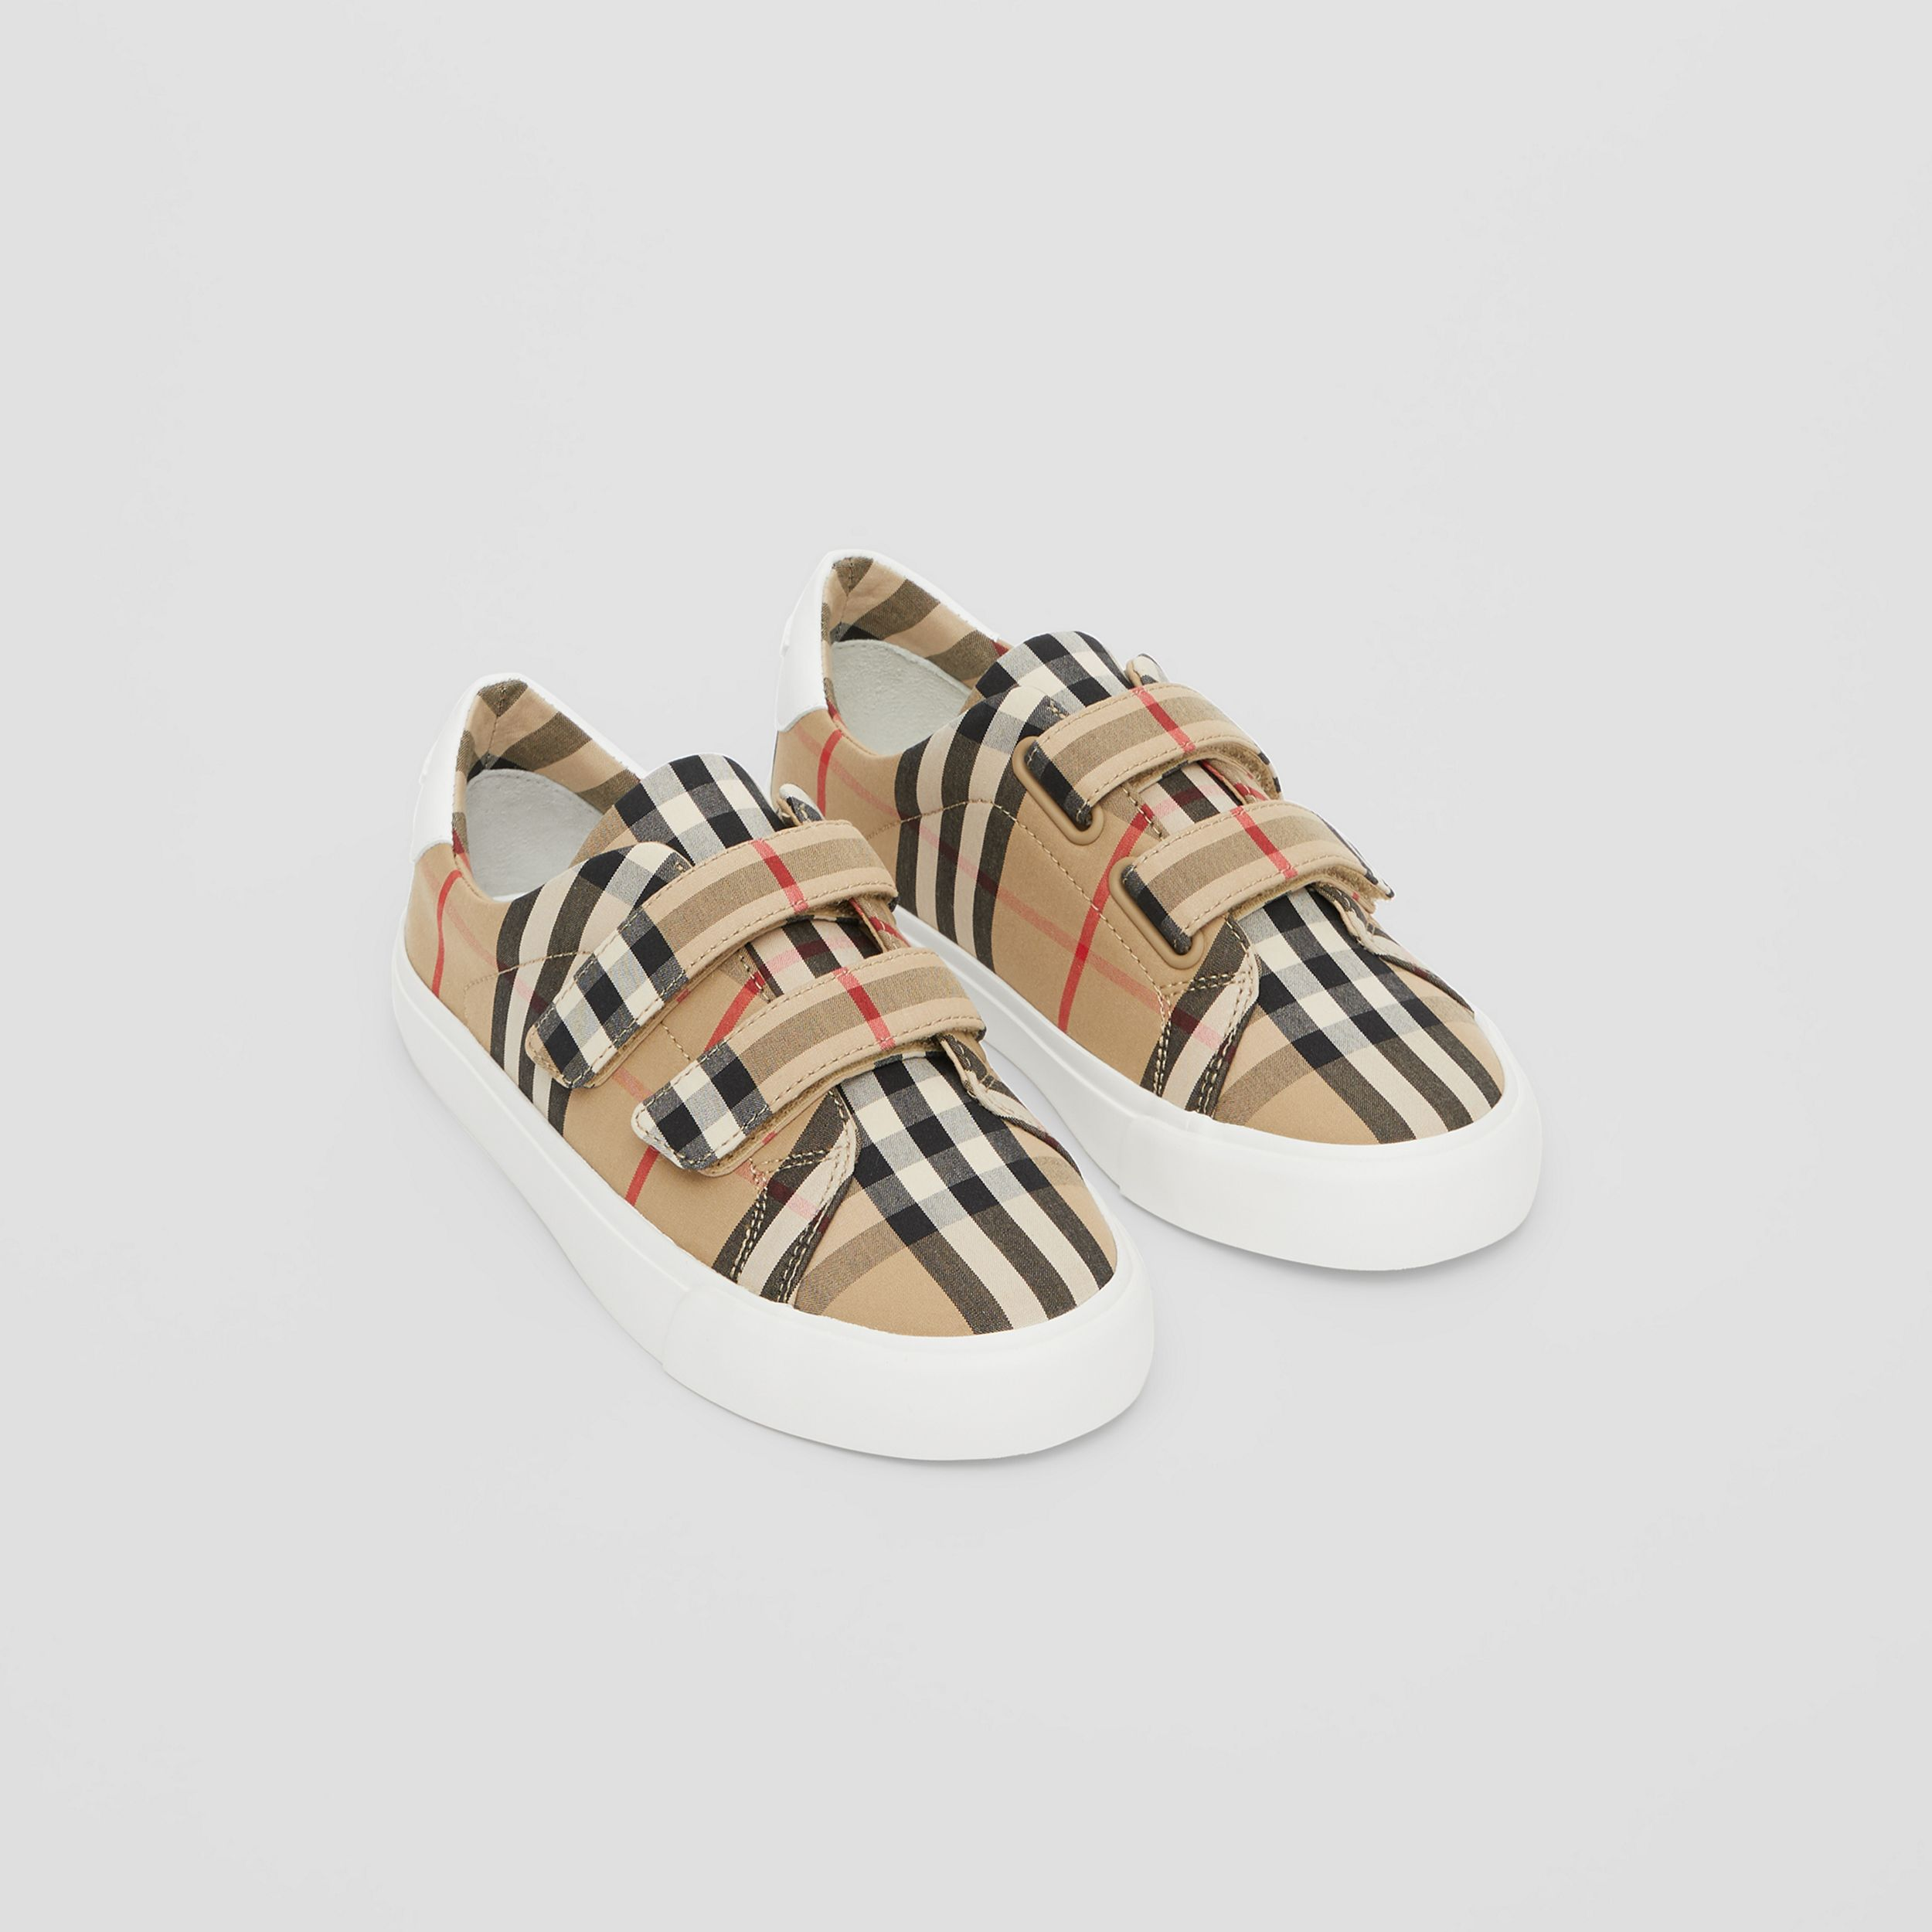 Vintage Check Cotton Sneakers in Archive Beige - Children | Burberry United Kingdom - 1